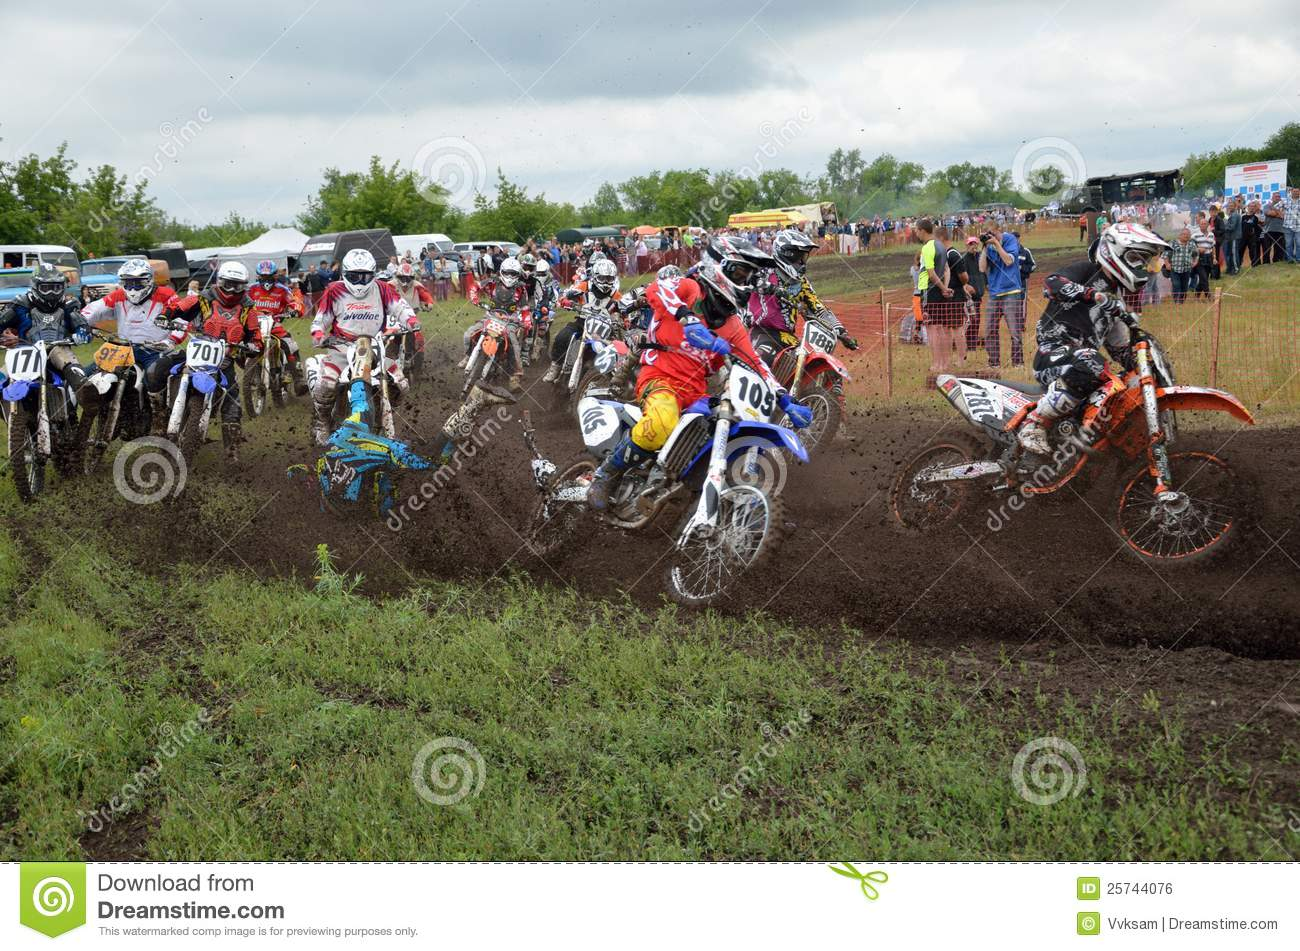 Start crash the motocross group of riders